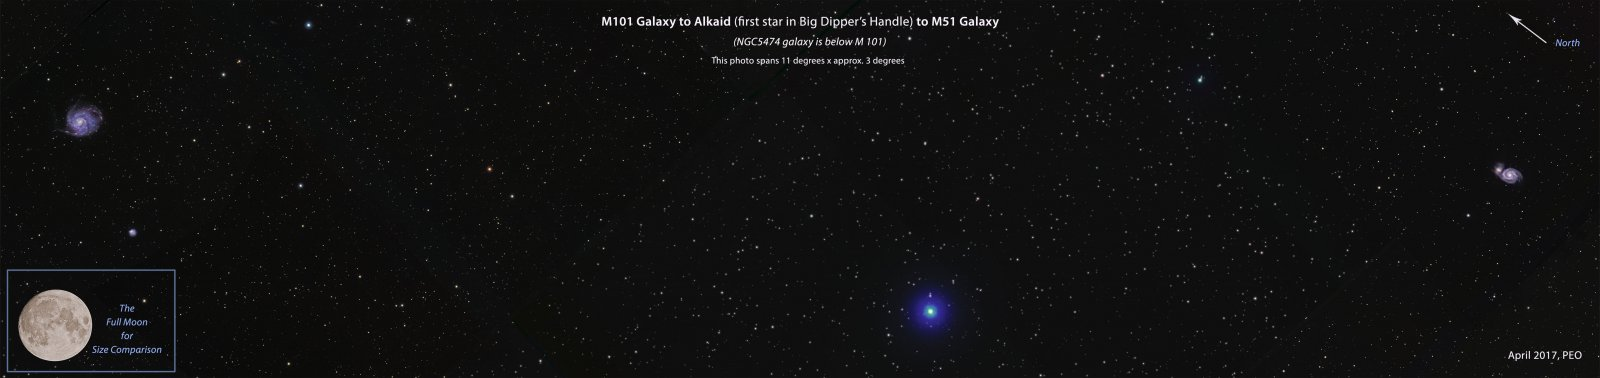 From M101 to M51